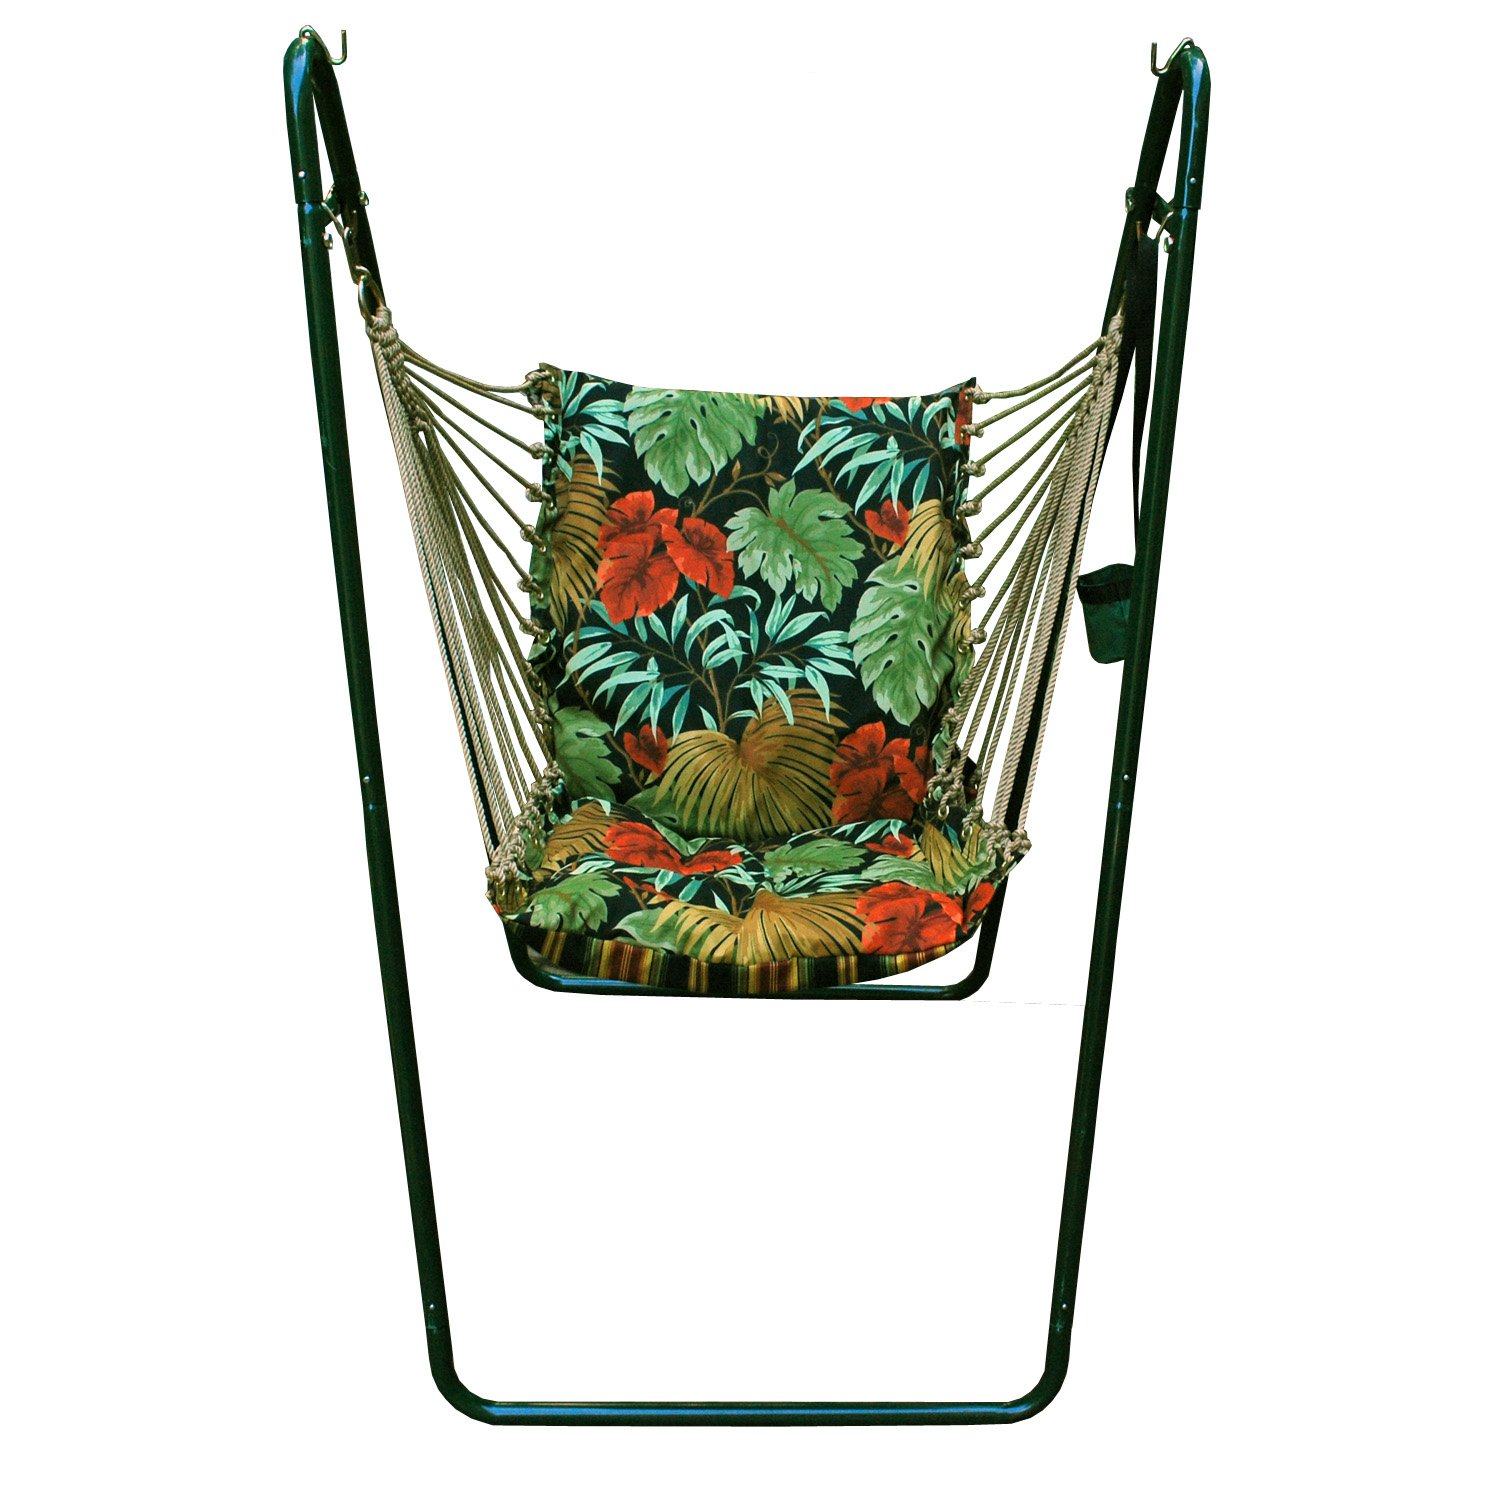 Amazon Algoma 1525 6683G Swing Chair and Stand bination